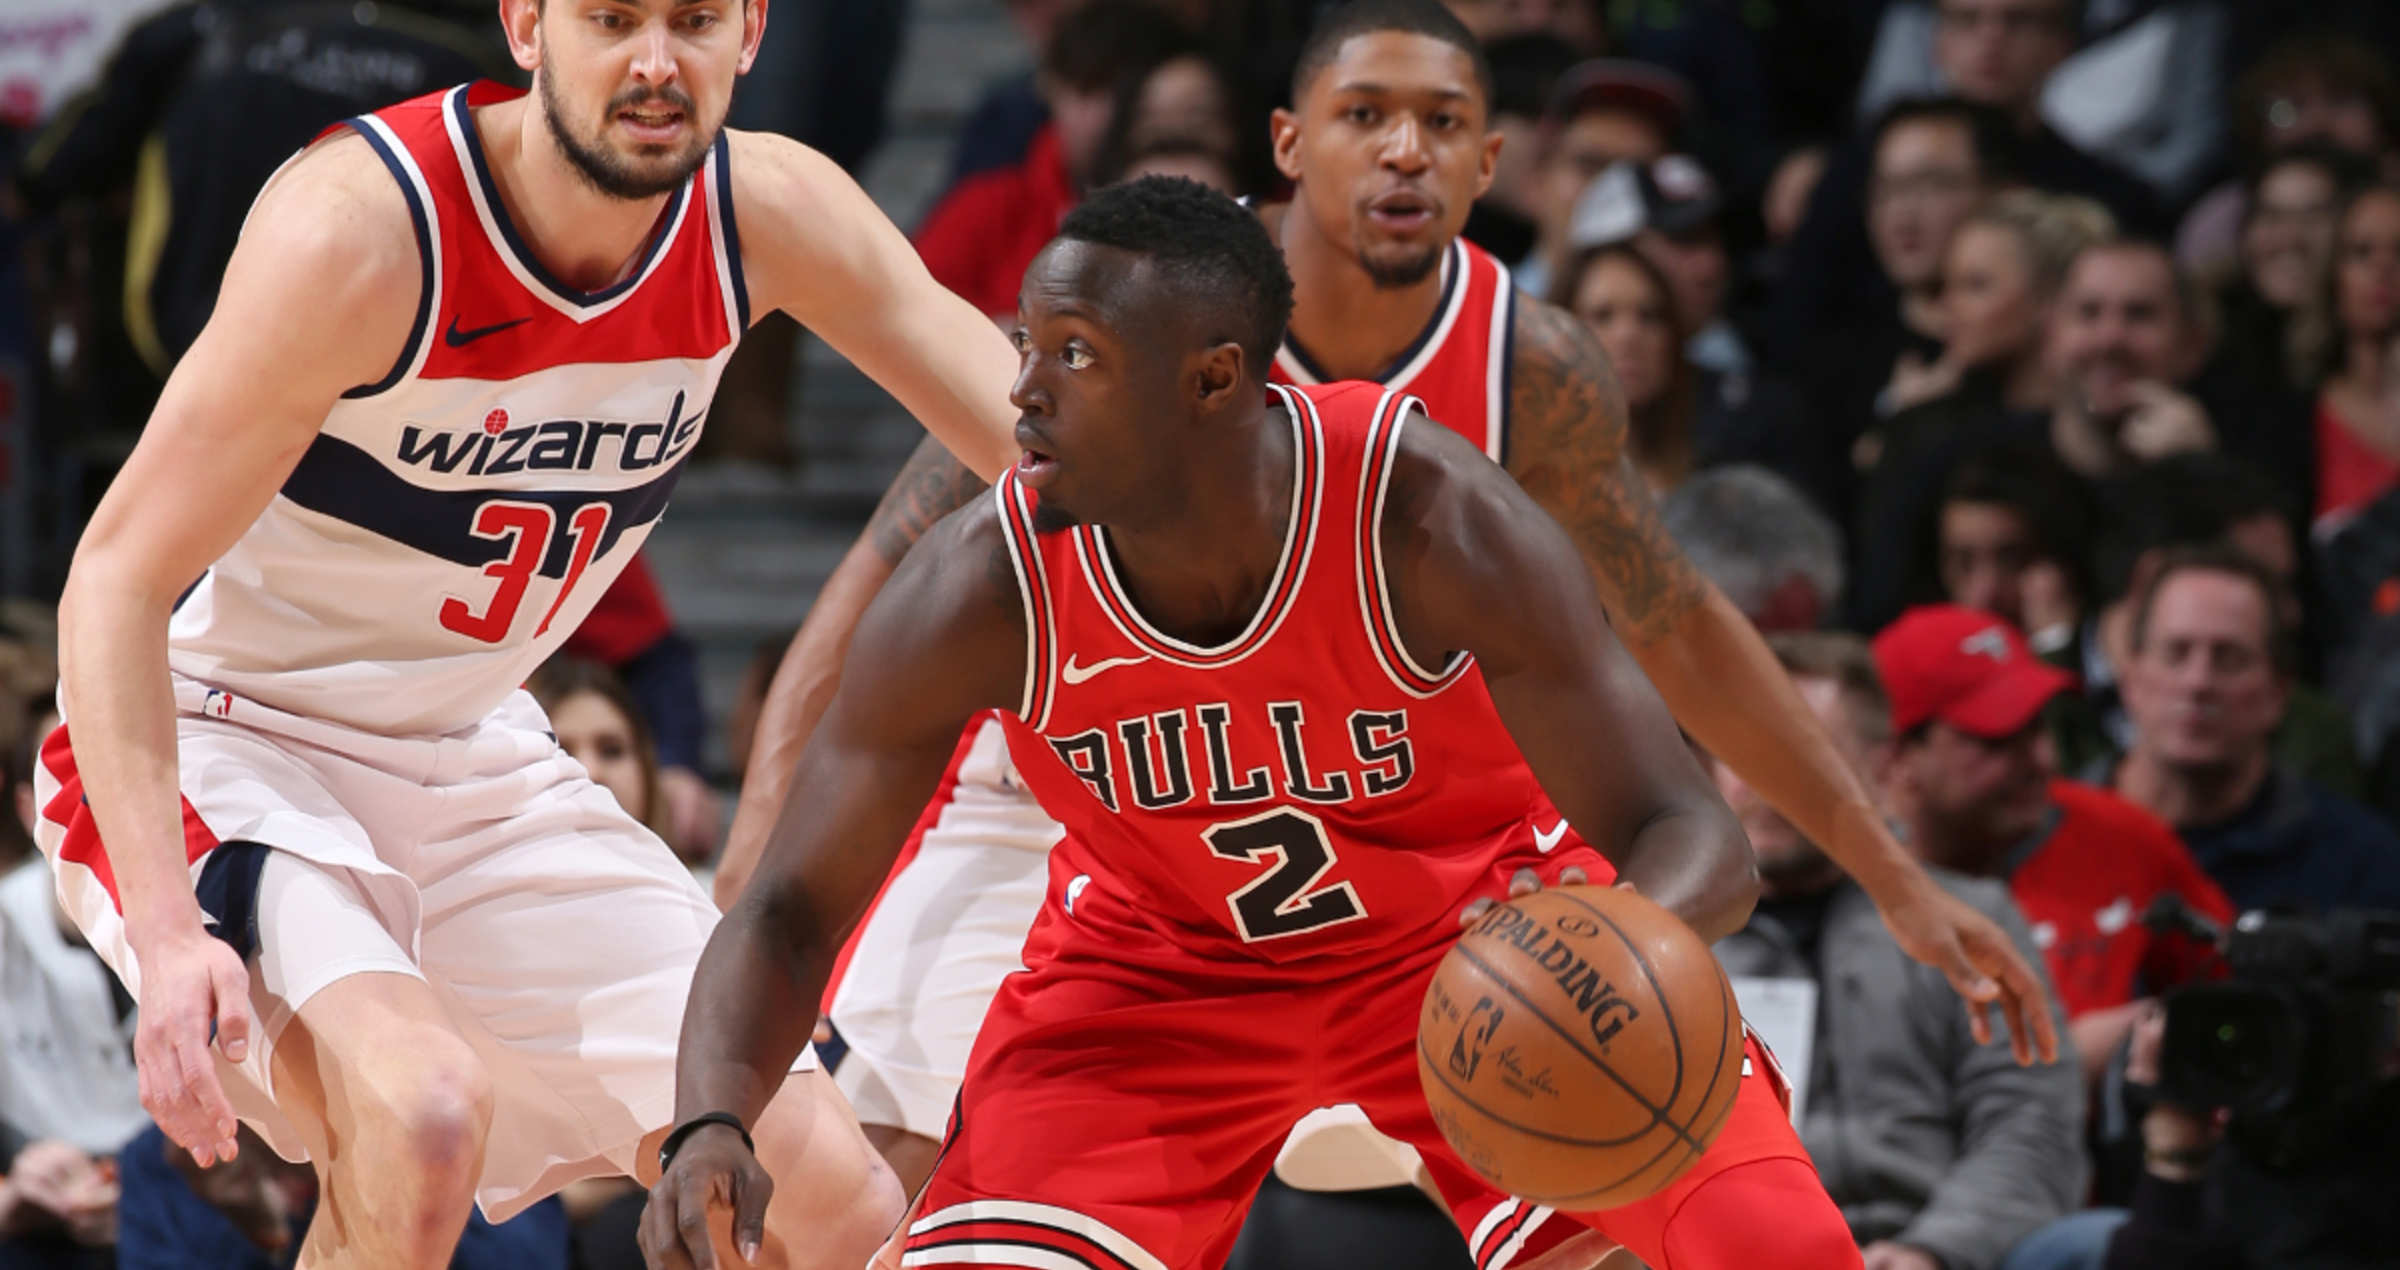 Jerian Grant dribbles against the Washington Wizards